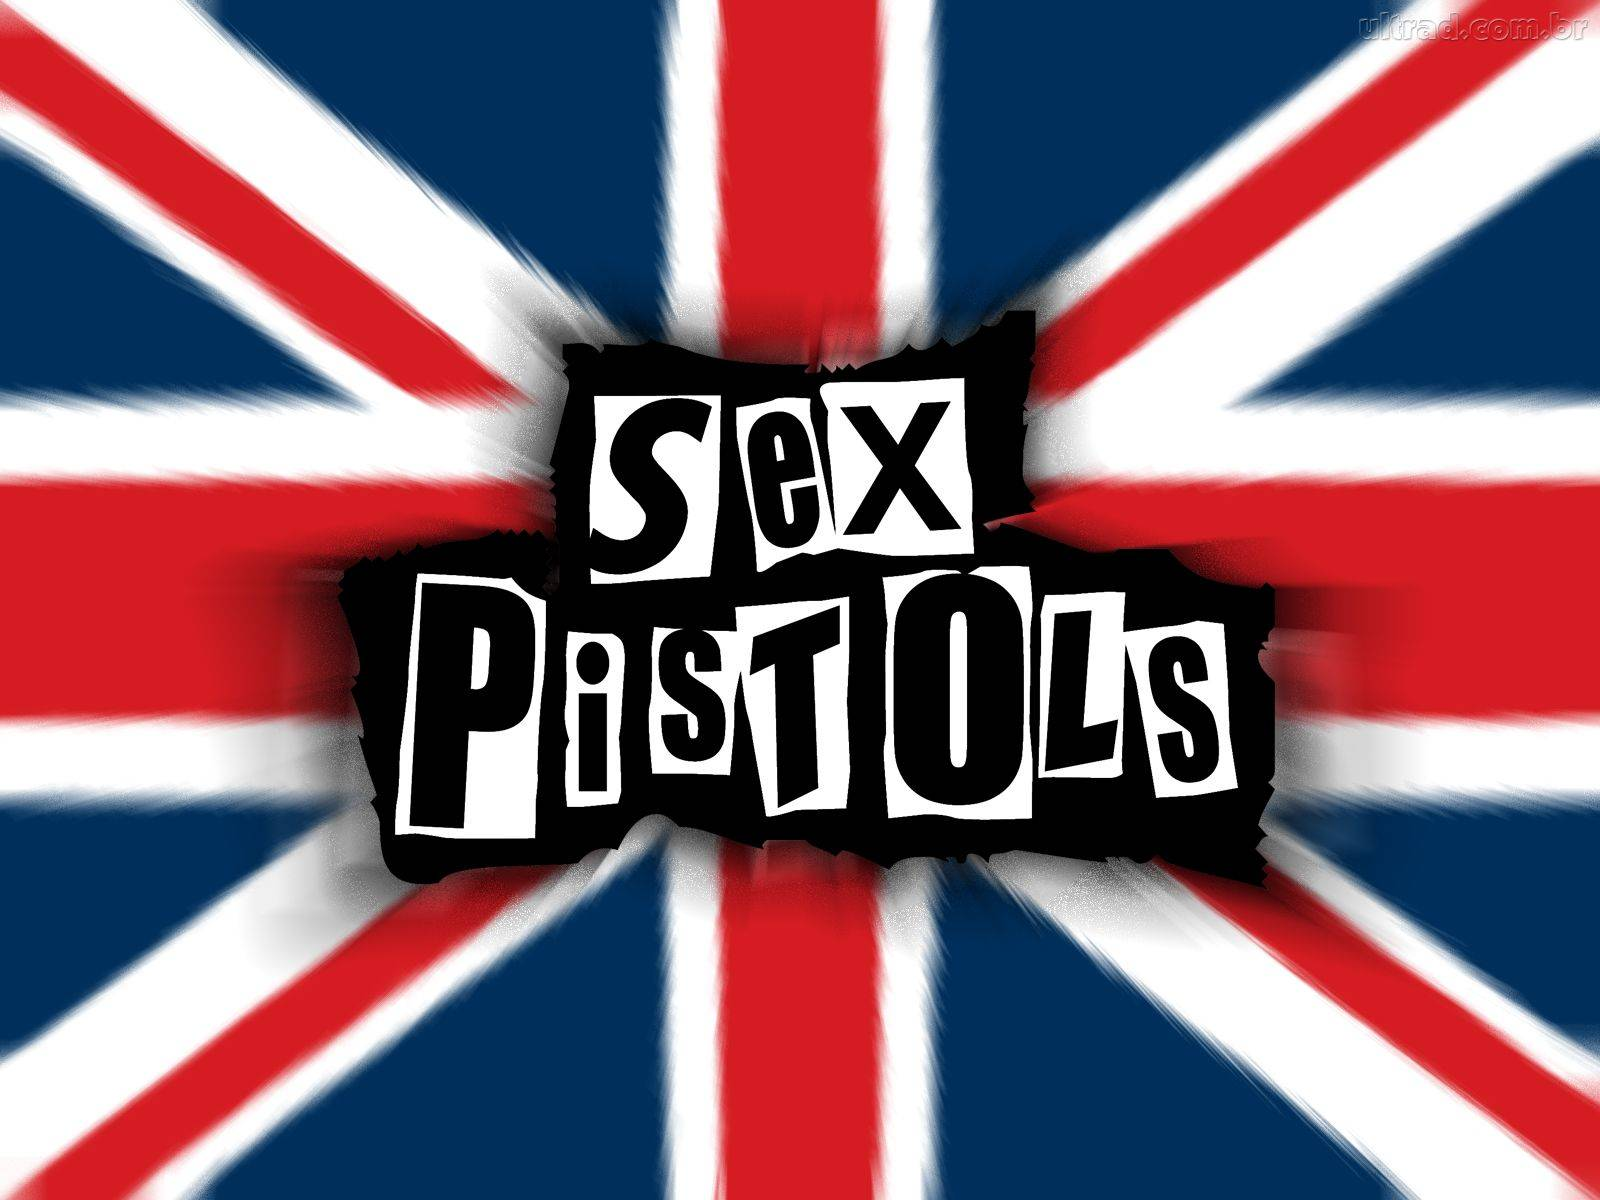 The sex pistols wall paper